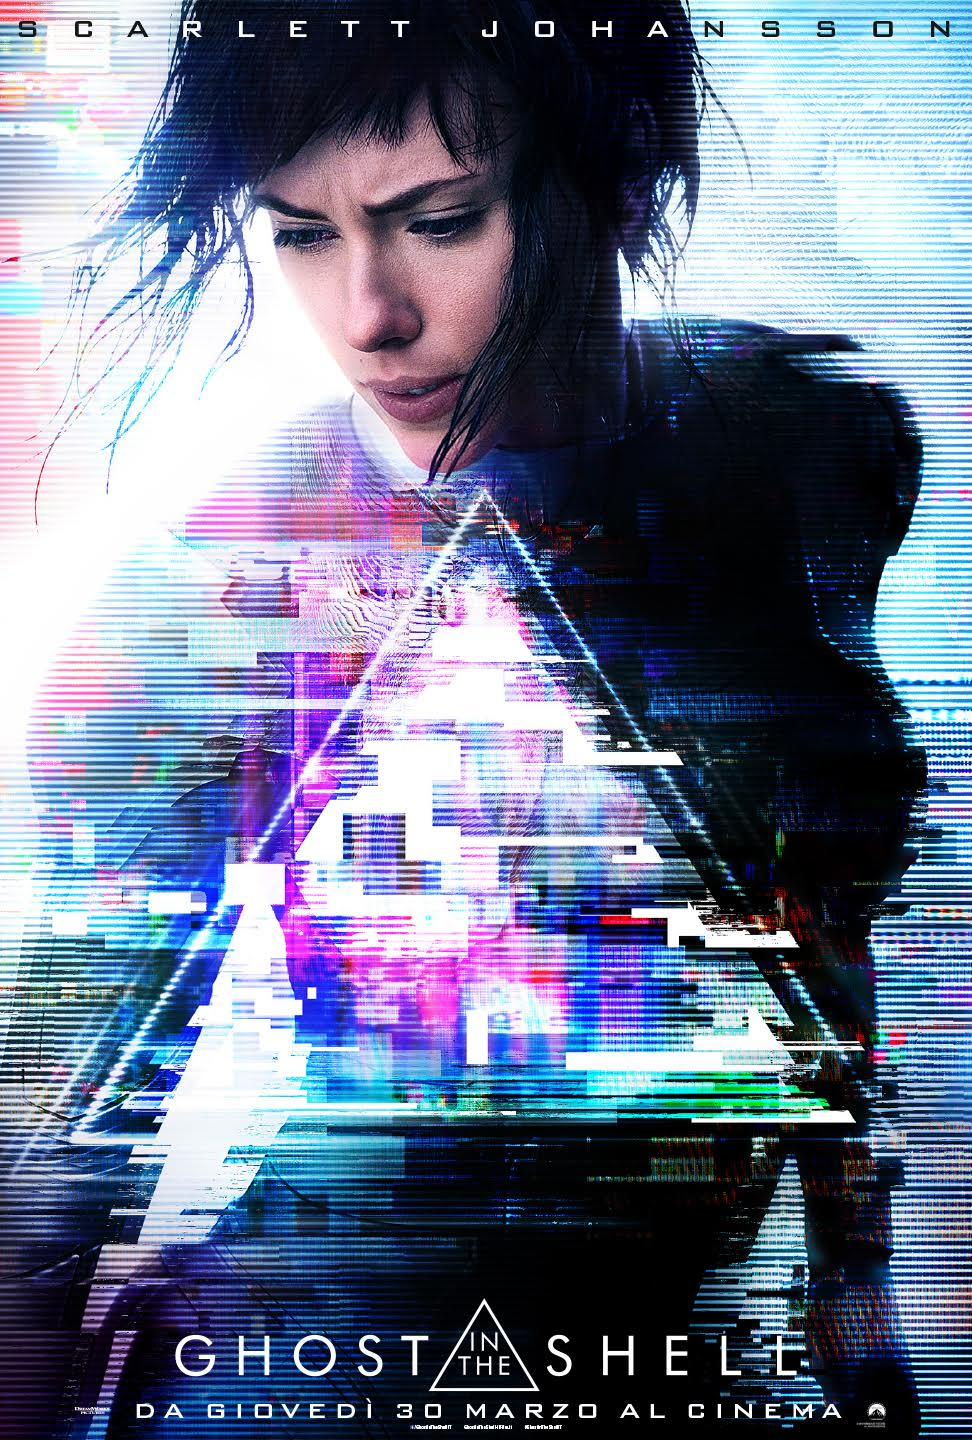 https://i1.wp.com/www.badtaste.it/wp/wp-content/uploads/2016/11/ghost-in-the-shell-poster.jpg?resize=972%2C1440&quality=85&strip=all